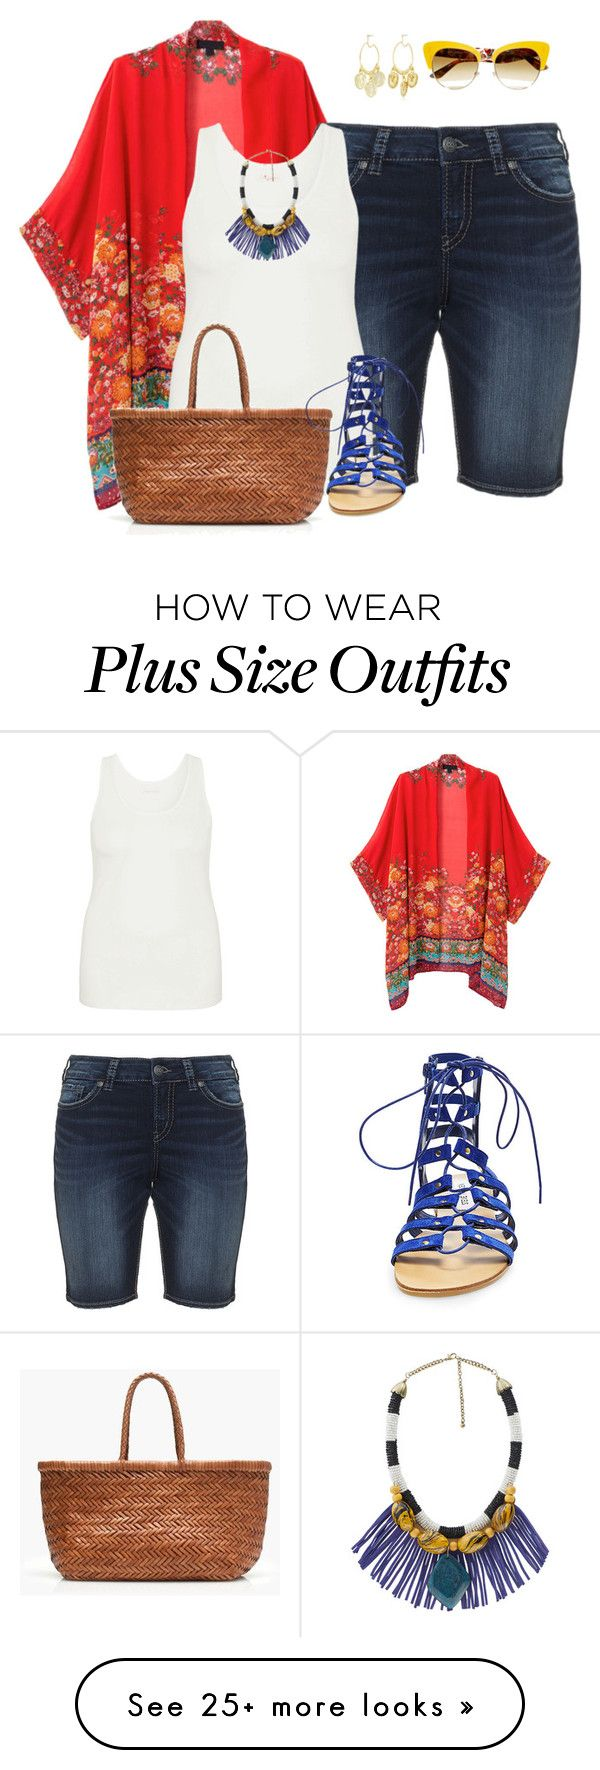 """""""plus size kimono styles/summer diva"""" by kristie-payne on Polyvore featuring WithChic, Silver Jeans Co., maurices, Kenneth Jay Lane, J.Crew, Steve Madden, Dolce&Gabbana and MANGO"""